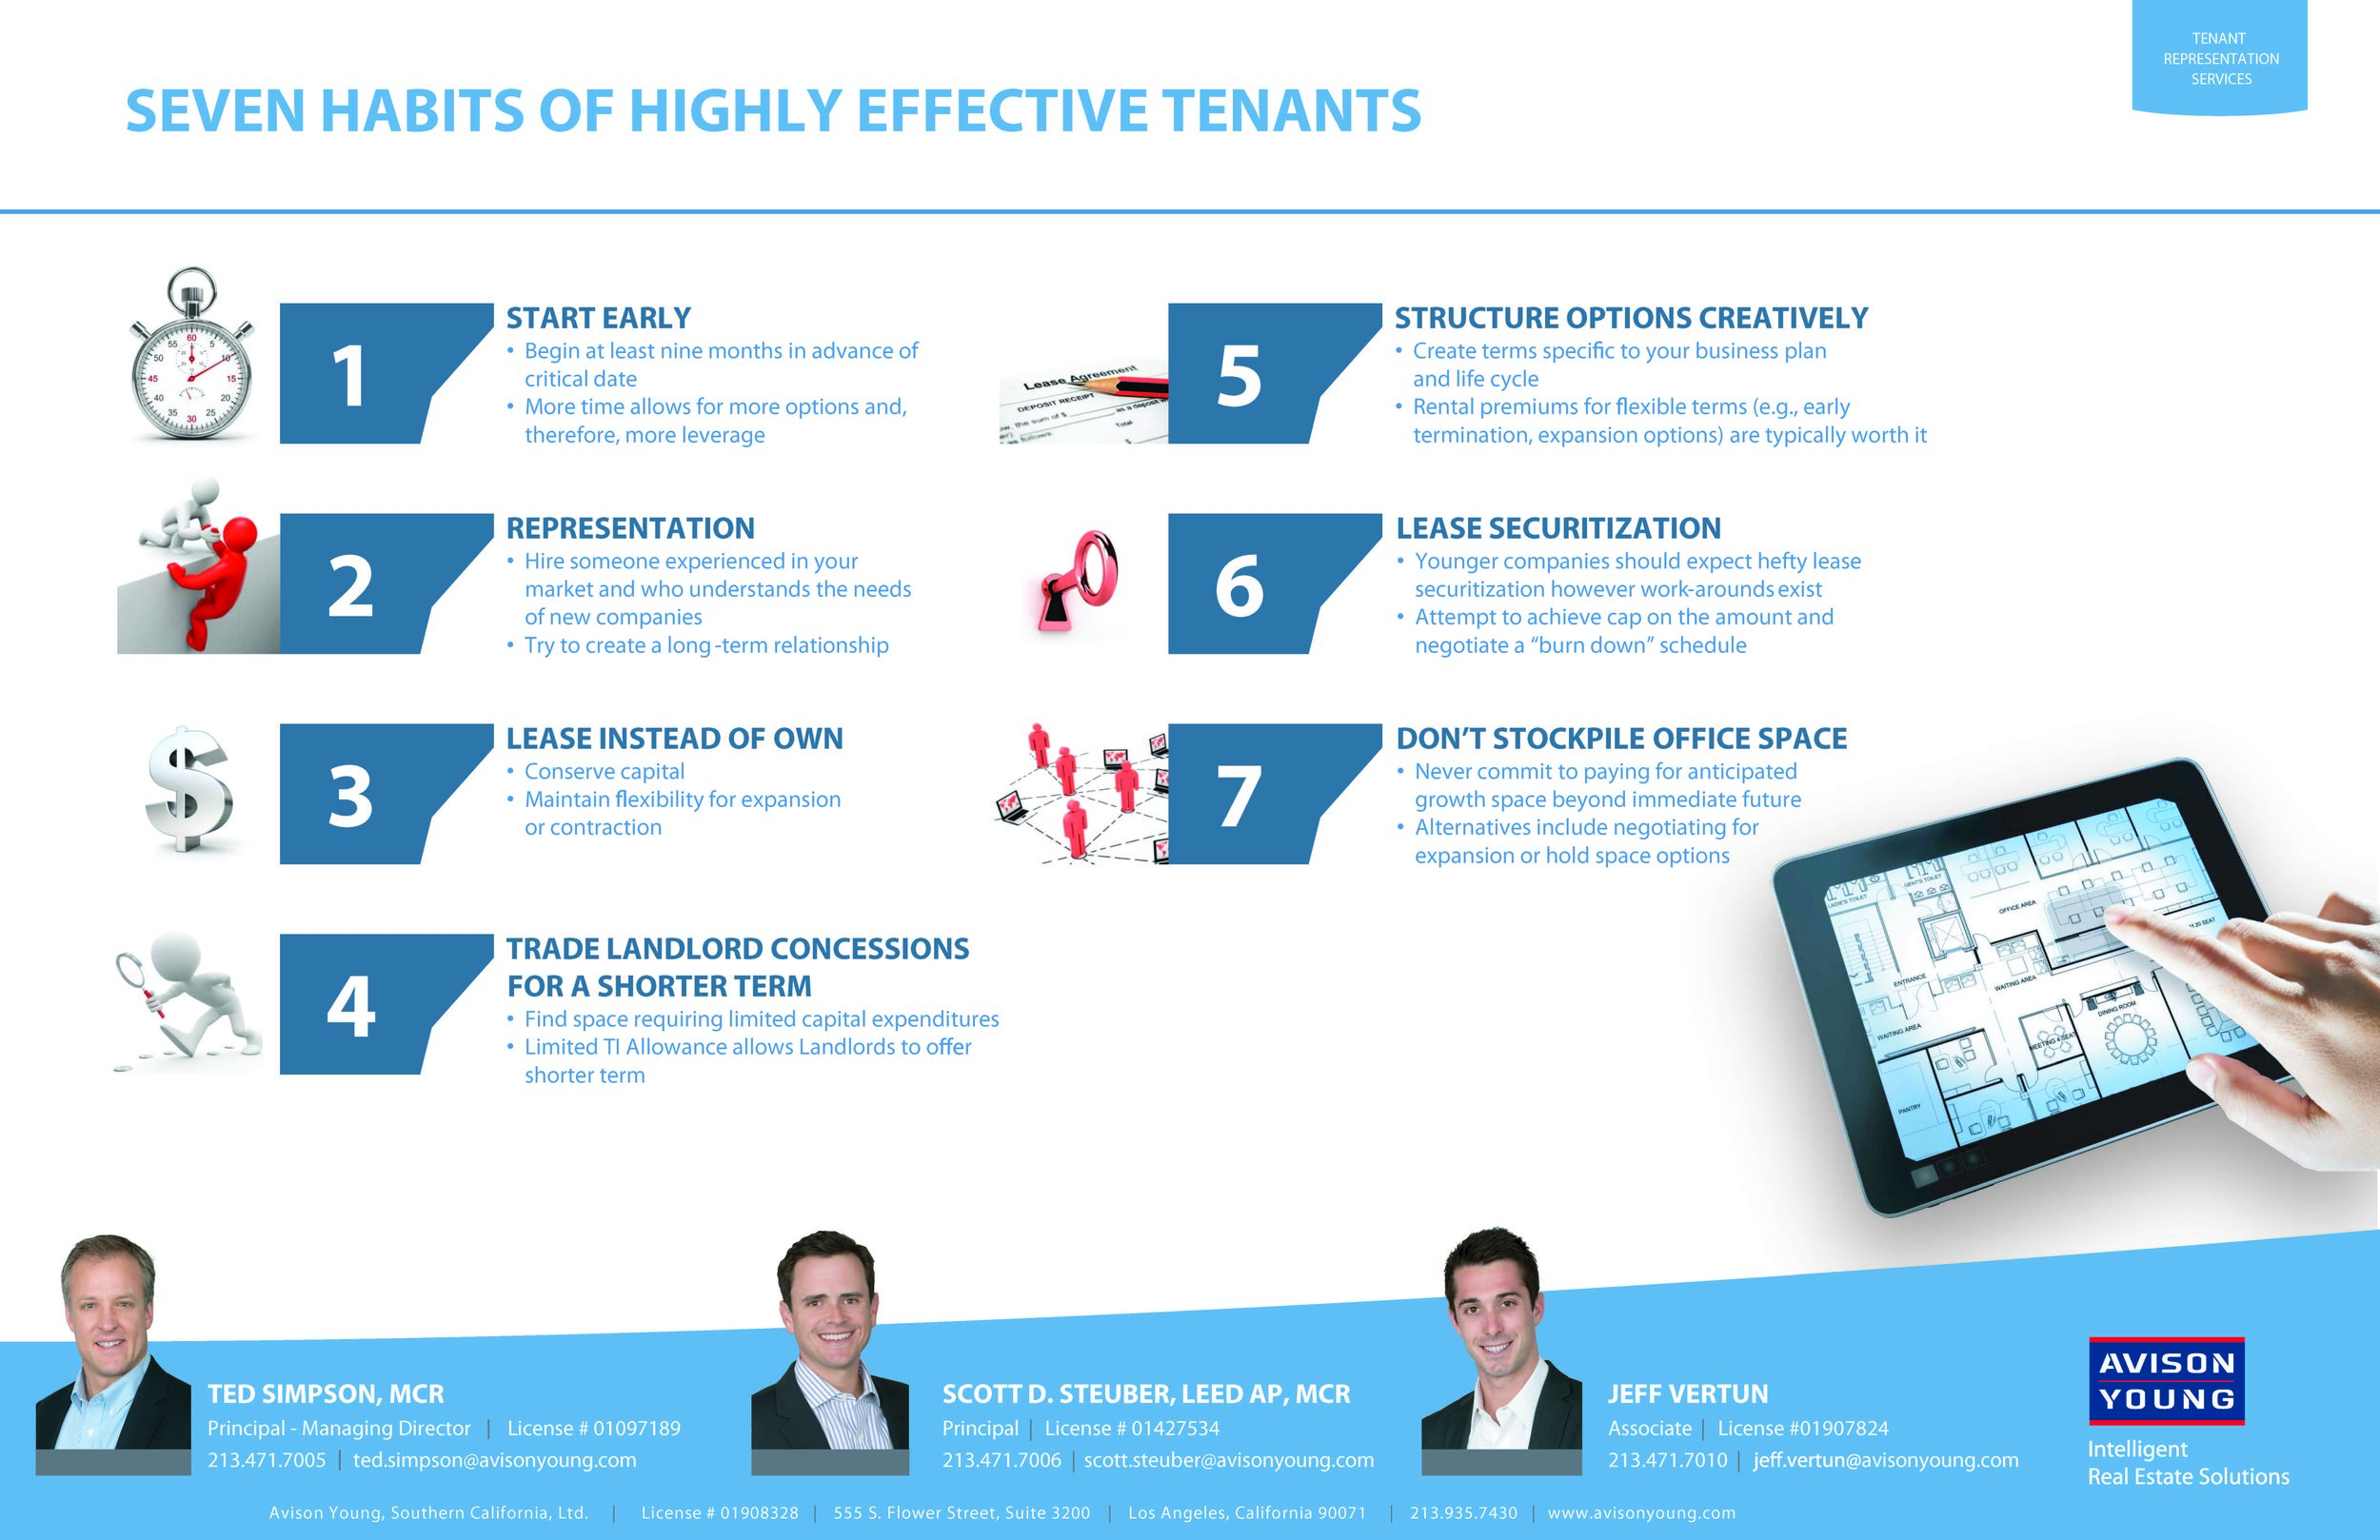 7 Habits of Highly Effective Tenants